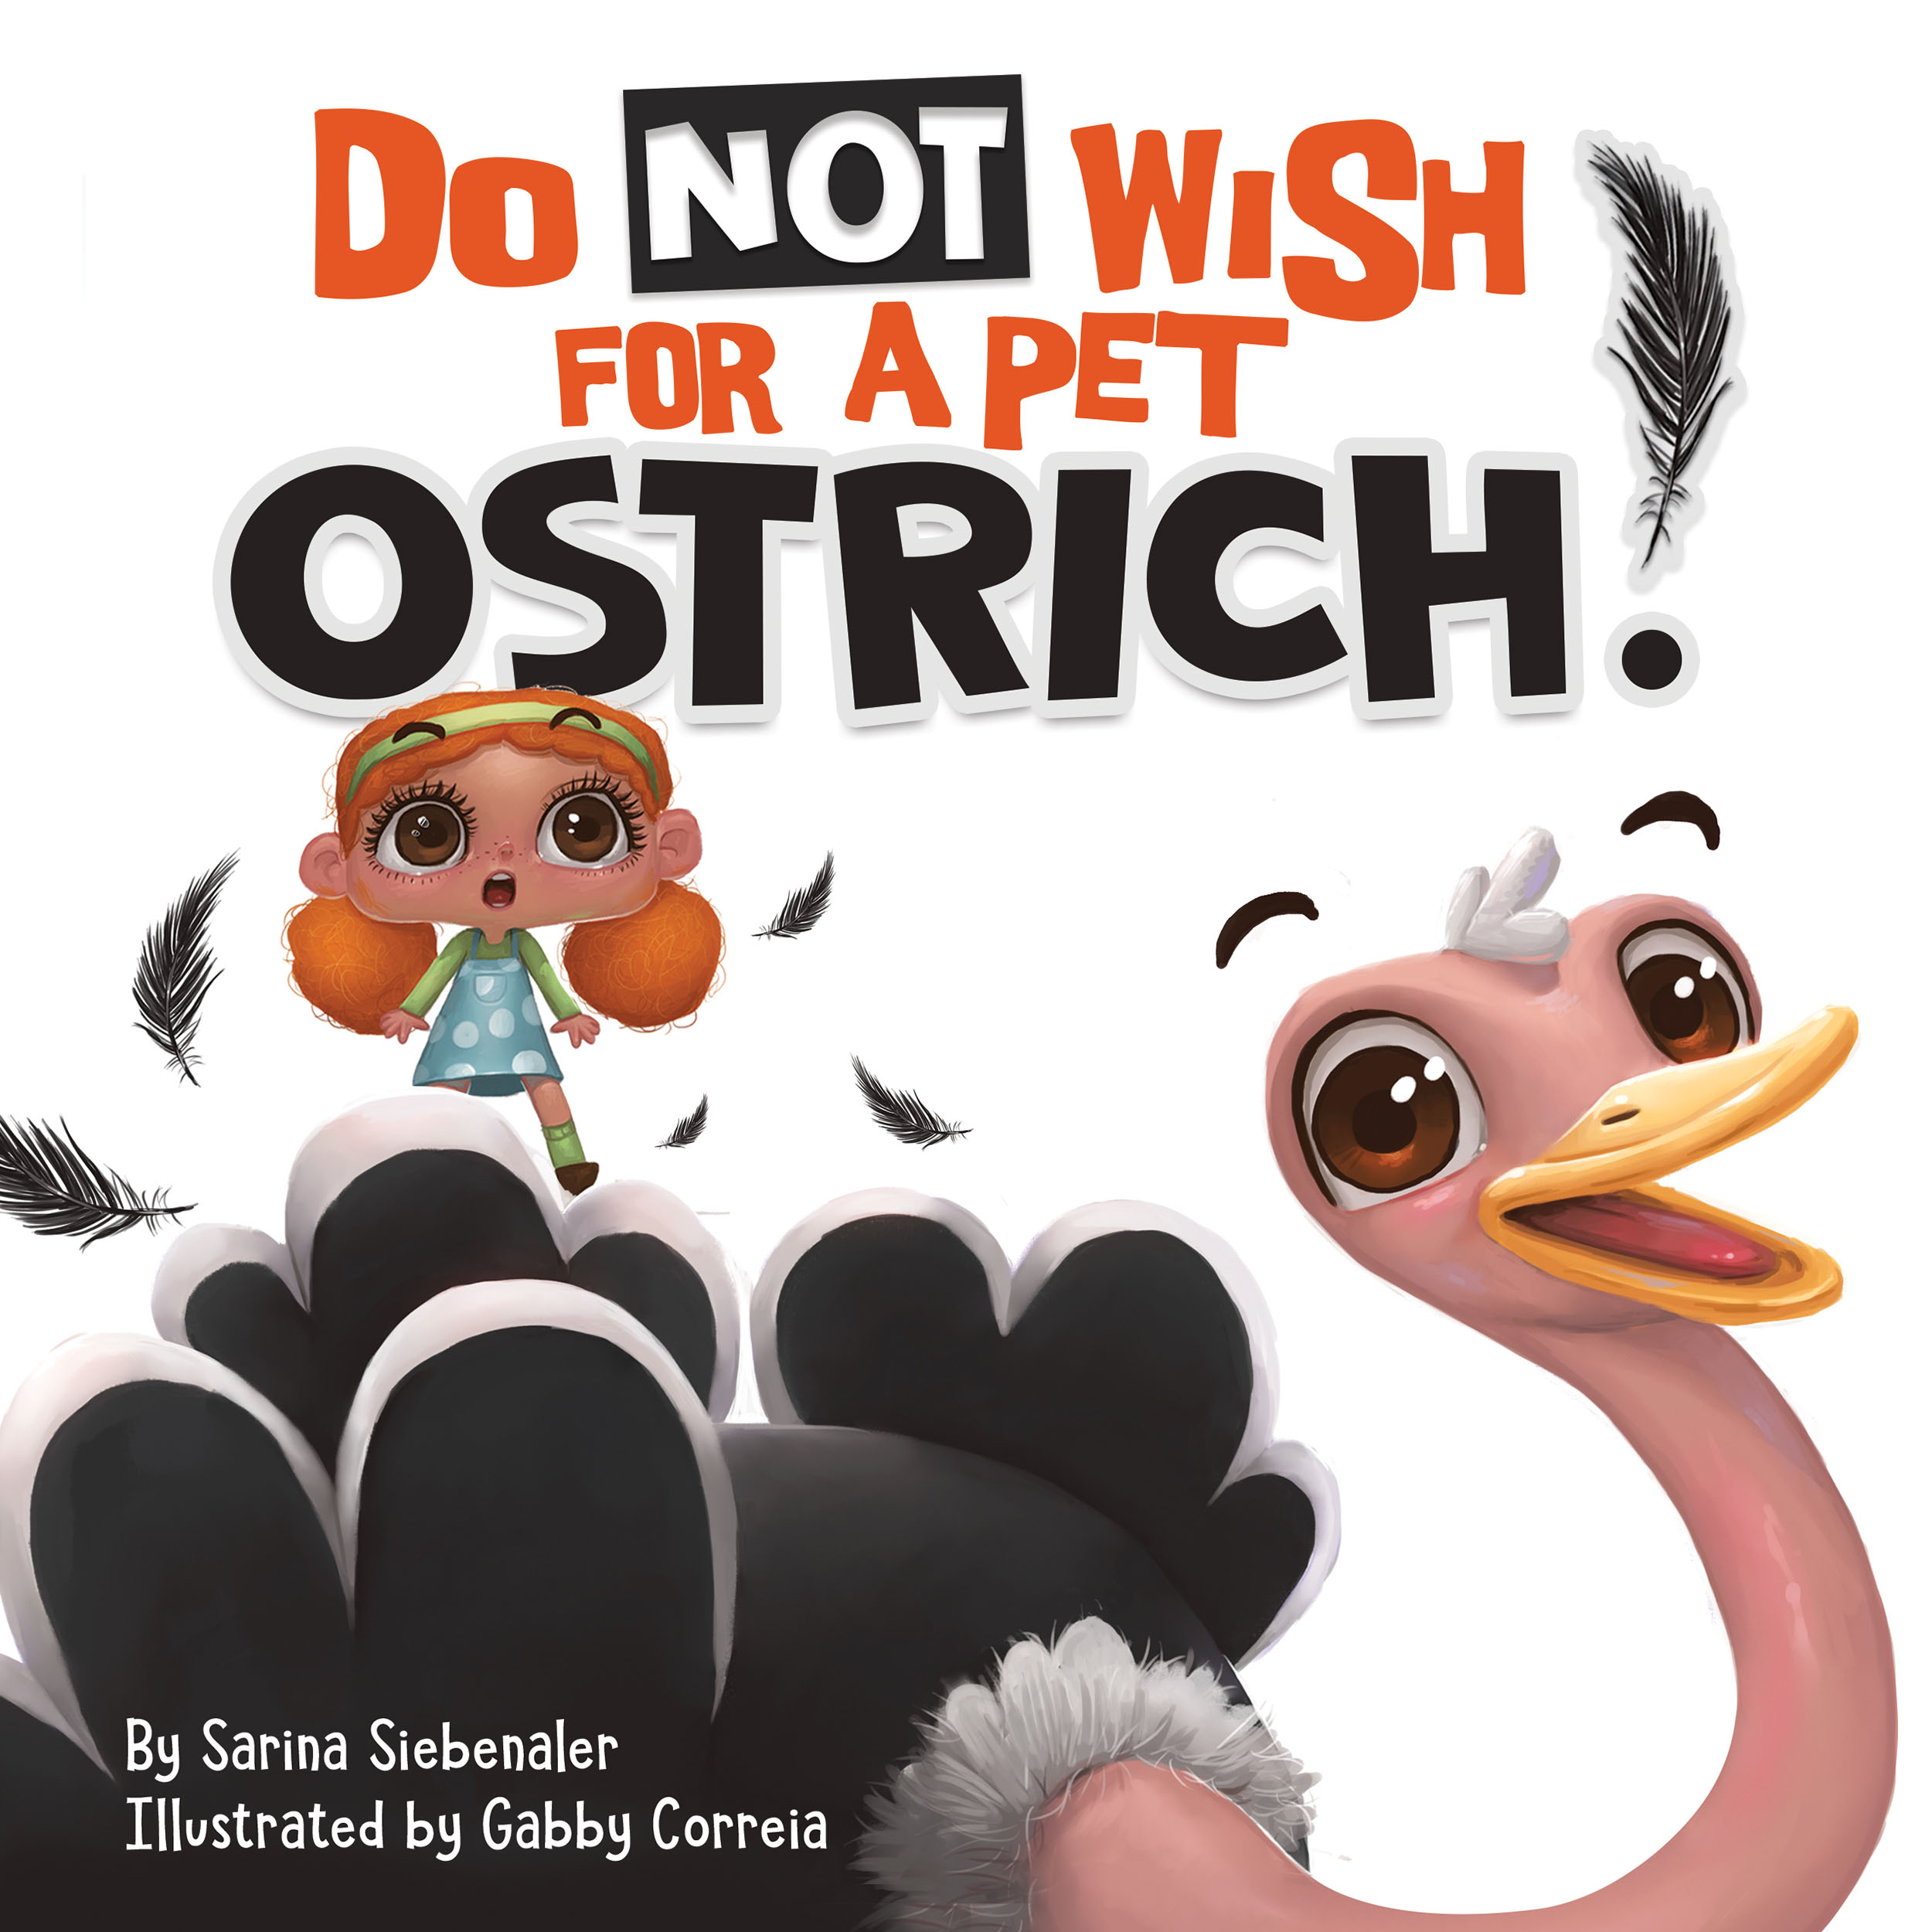 Do Not Wish For A Pet Ostrich by Sarina Siebenaler Book Review